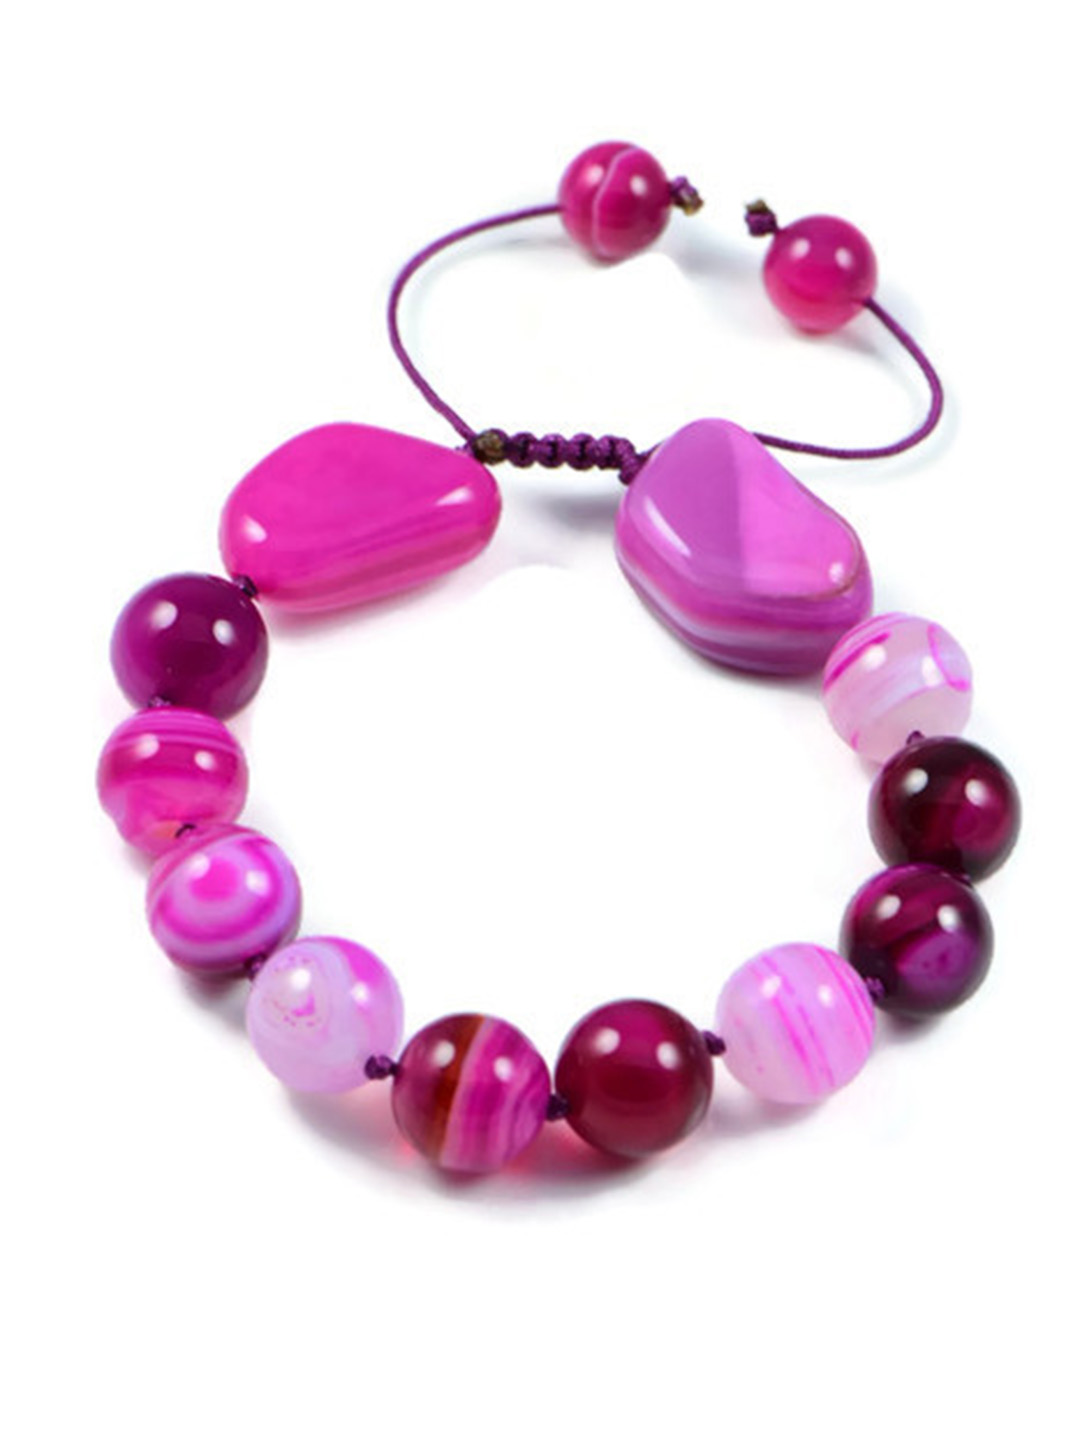 Classic Semi-Precious 10mm Round 12x18mm Nugget Gemstone Rose Agate Beads 7.5 inch Closed 10 inch Open Luxury Hand-knotted Women's Bracelet